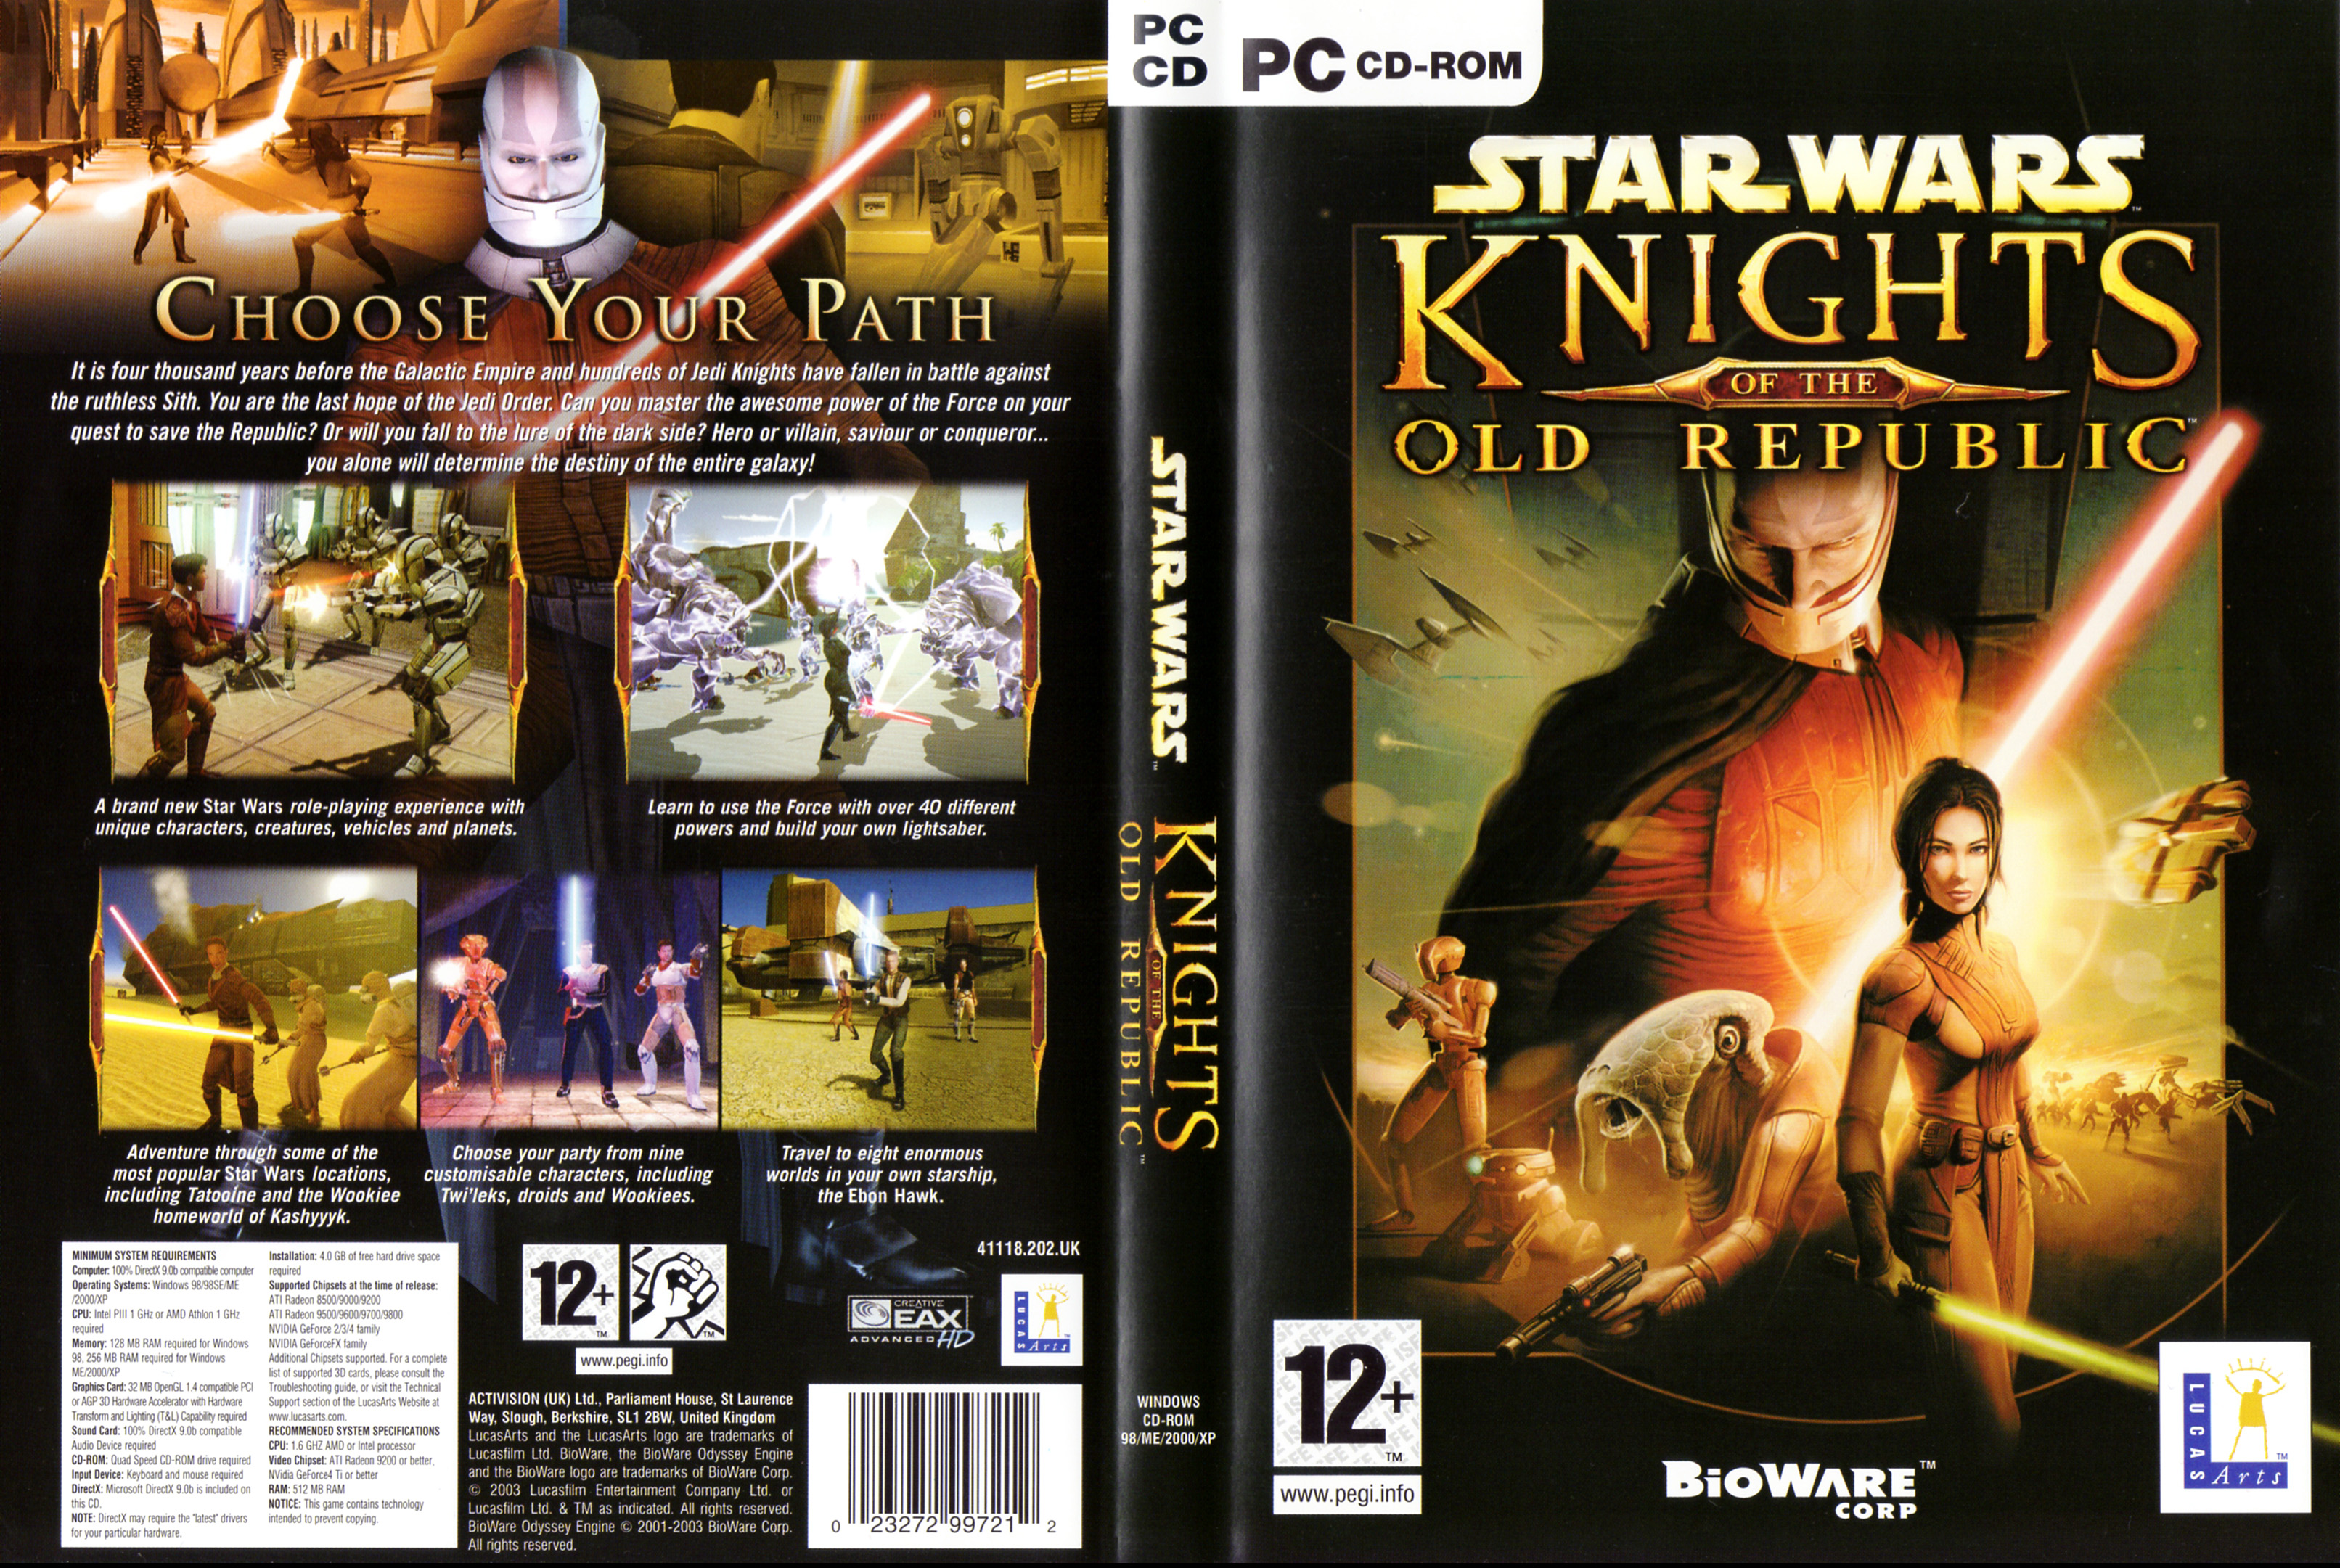 pc-star-wars-knights-of-the-old-republic